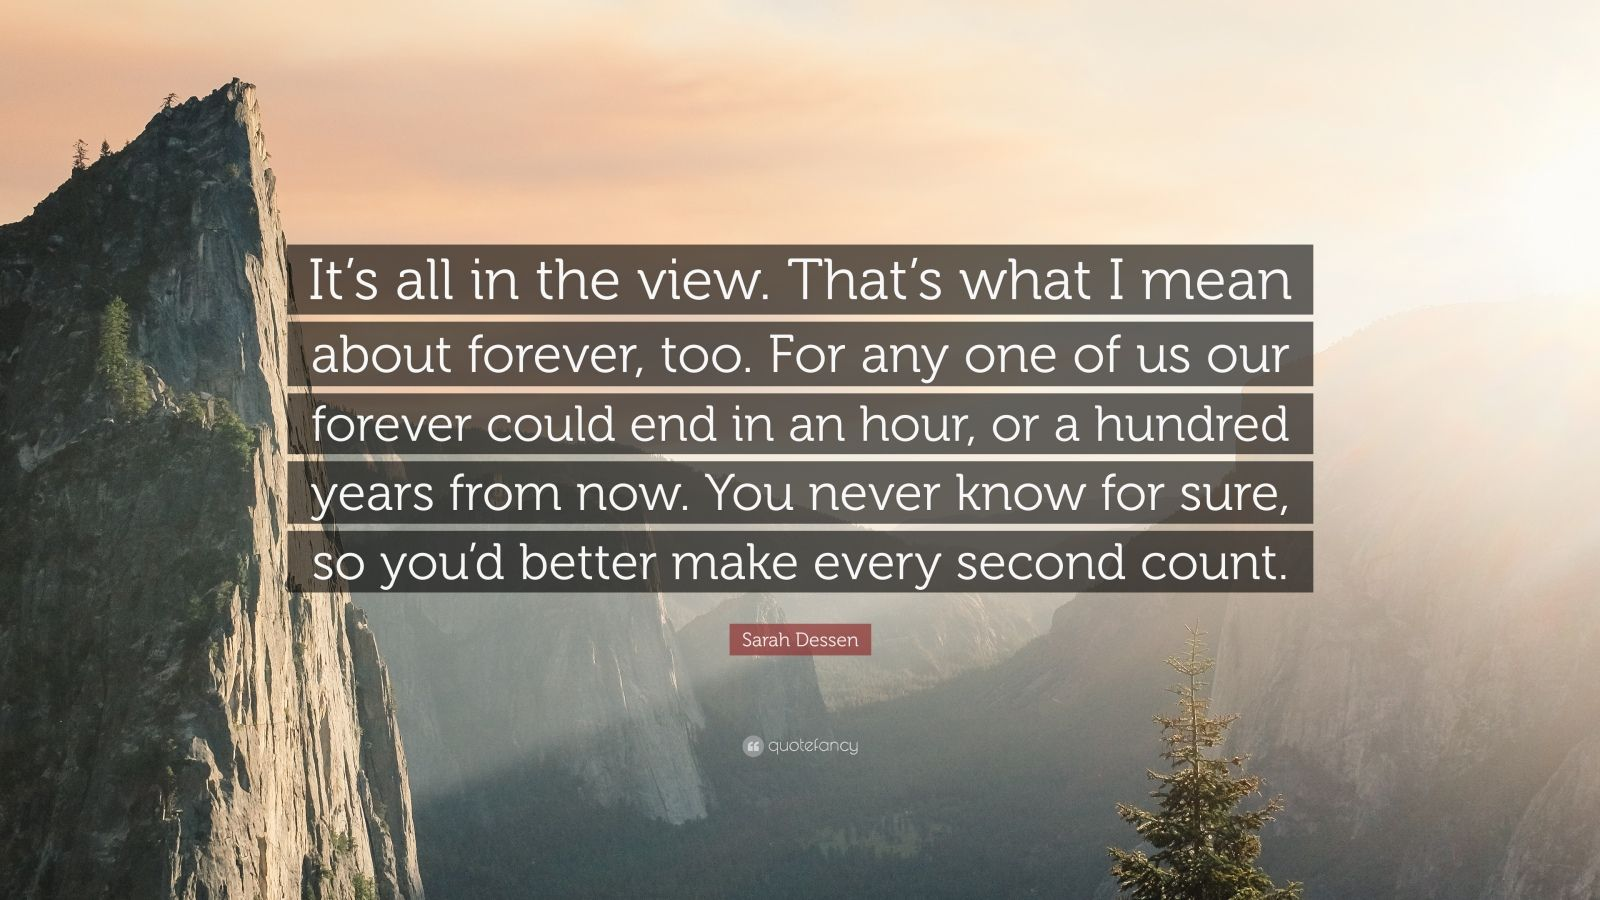 "Sarah Dessen Quote: ""It's all in the view. That's what I mean about forever, too. For any one of us our forever could end in an hour, or a hundred years from now. You never know for sure, so you'd better make every second count."""